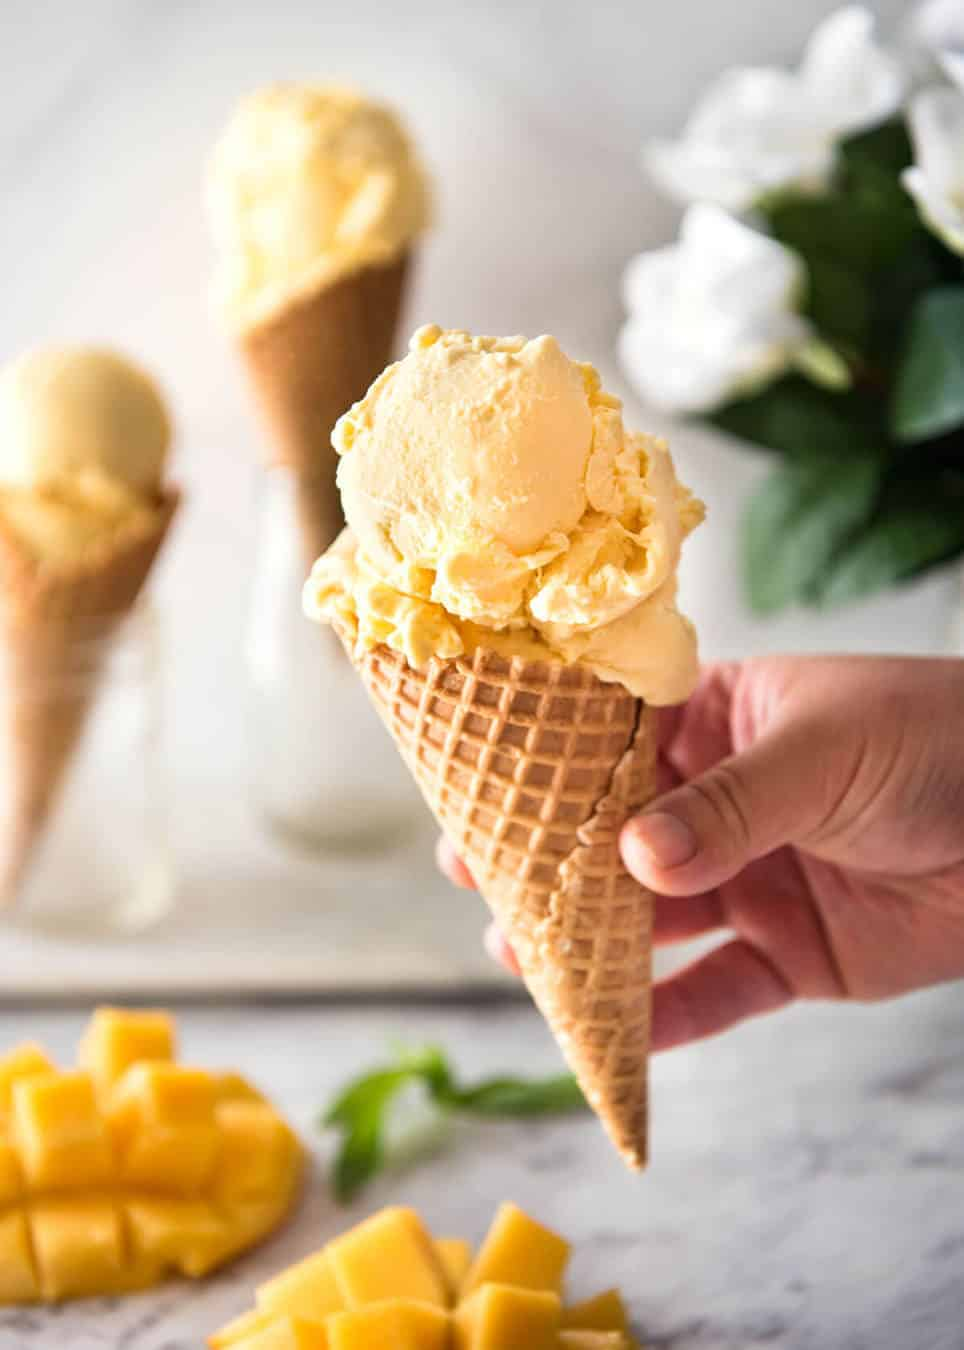 Ice cream cone with mango ice cream held in a hand.